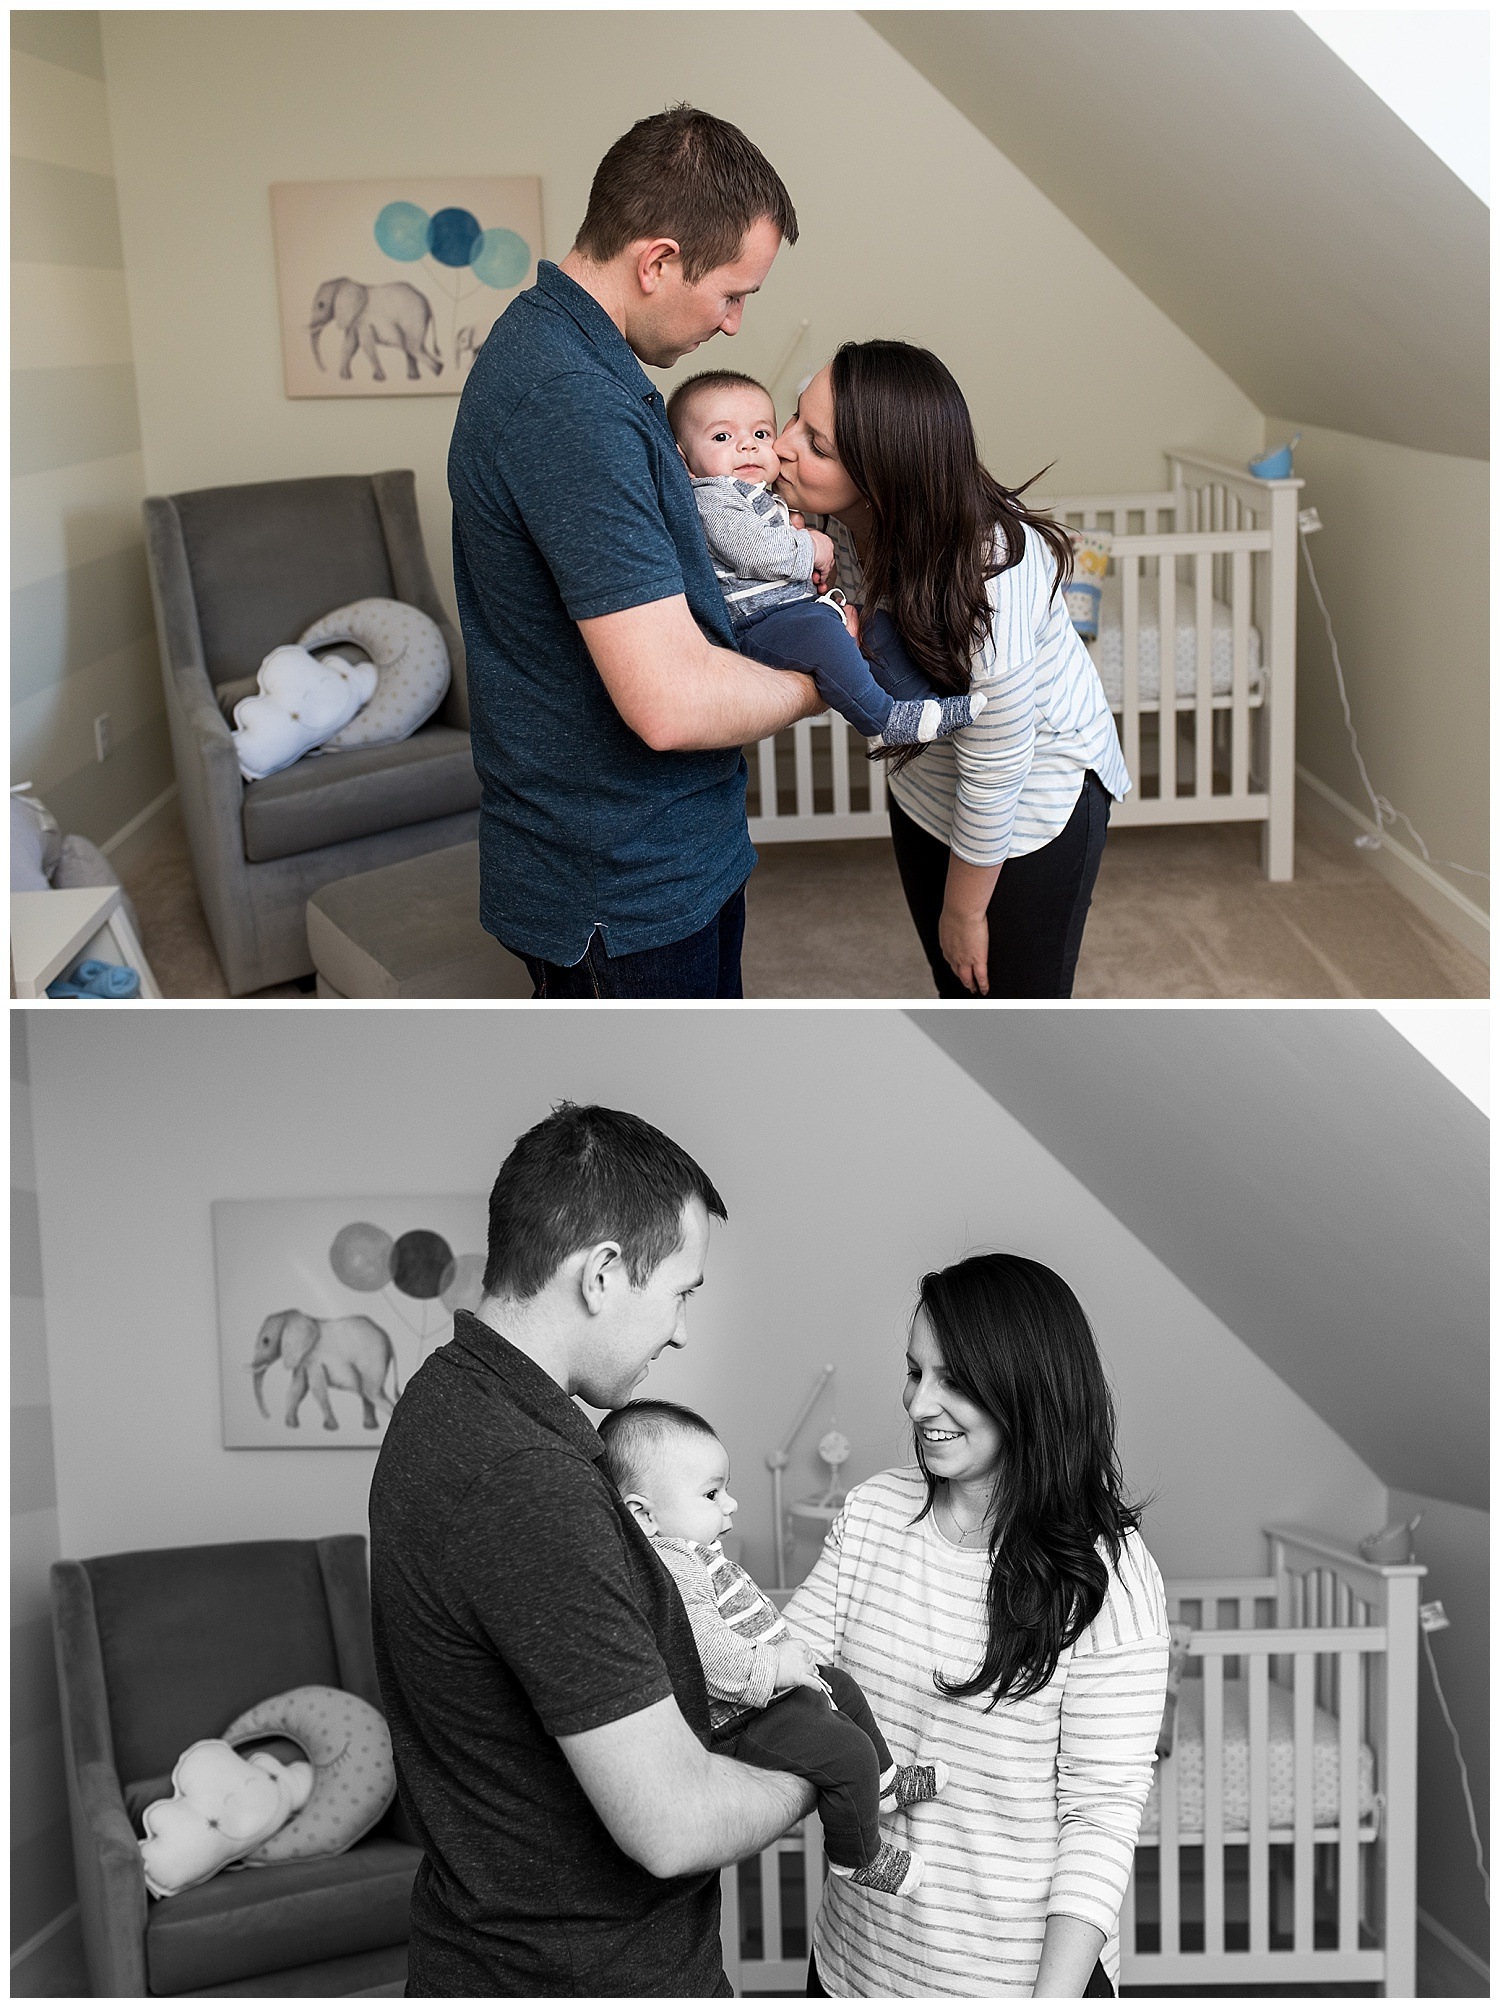 mom and dad with baby in nursery in hartford county, ct family photography session